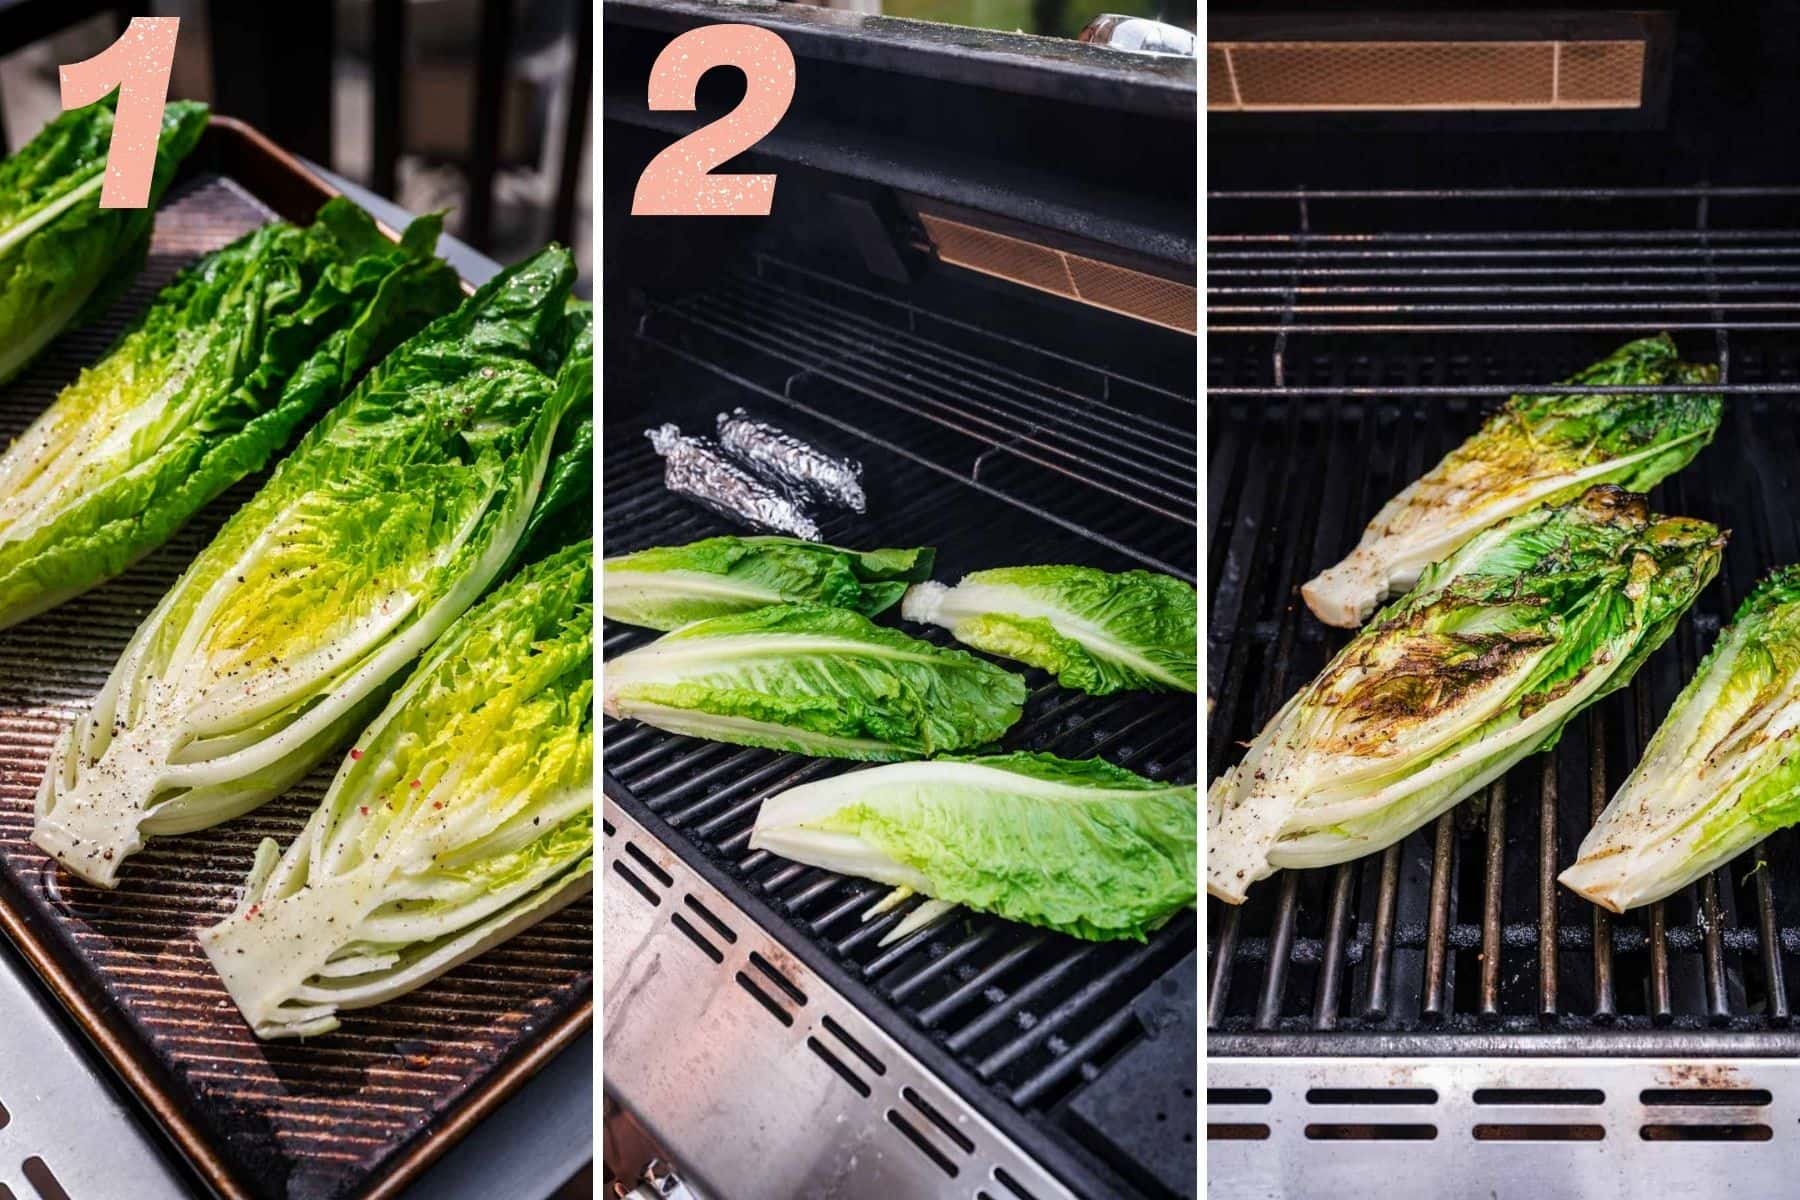 Romaine being prepped and then placed on the grill alongside corn.